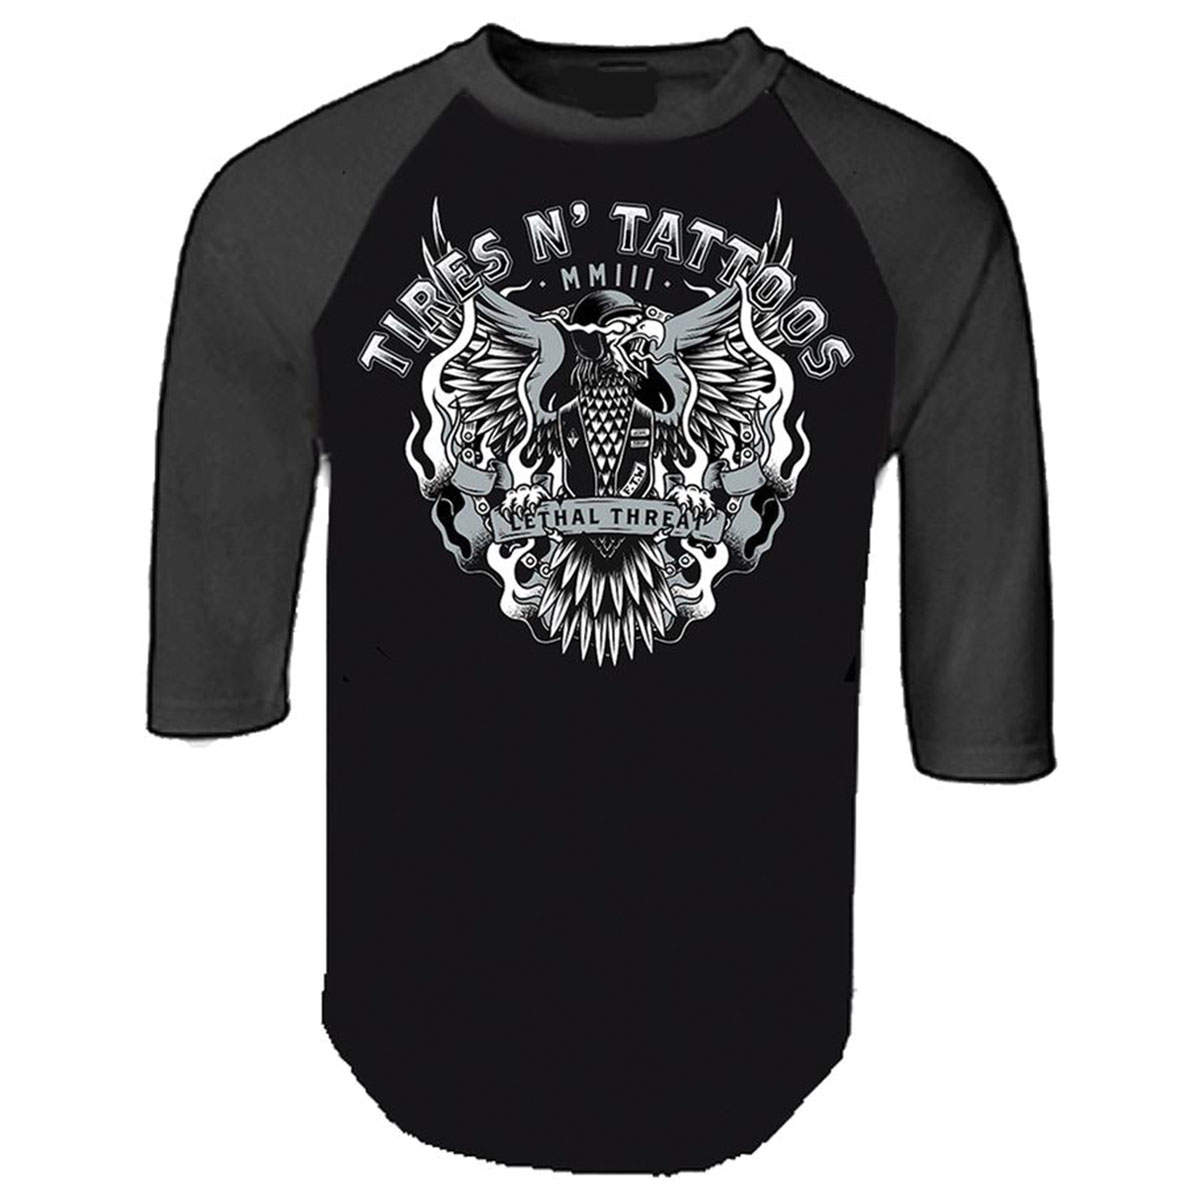 Lethal Threat Men's Tires N' Tattoos Black/Gray Raglan Shirt